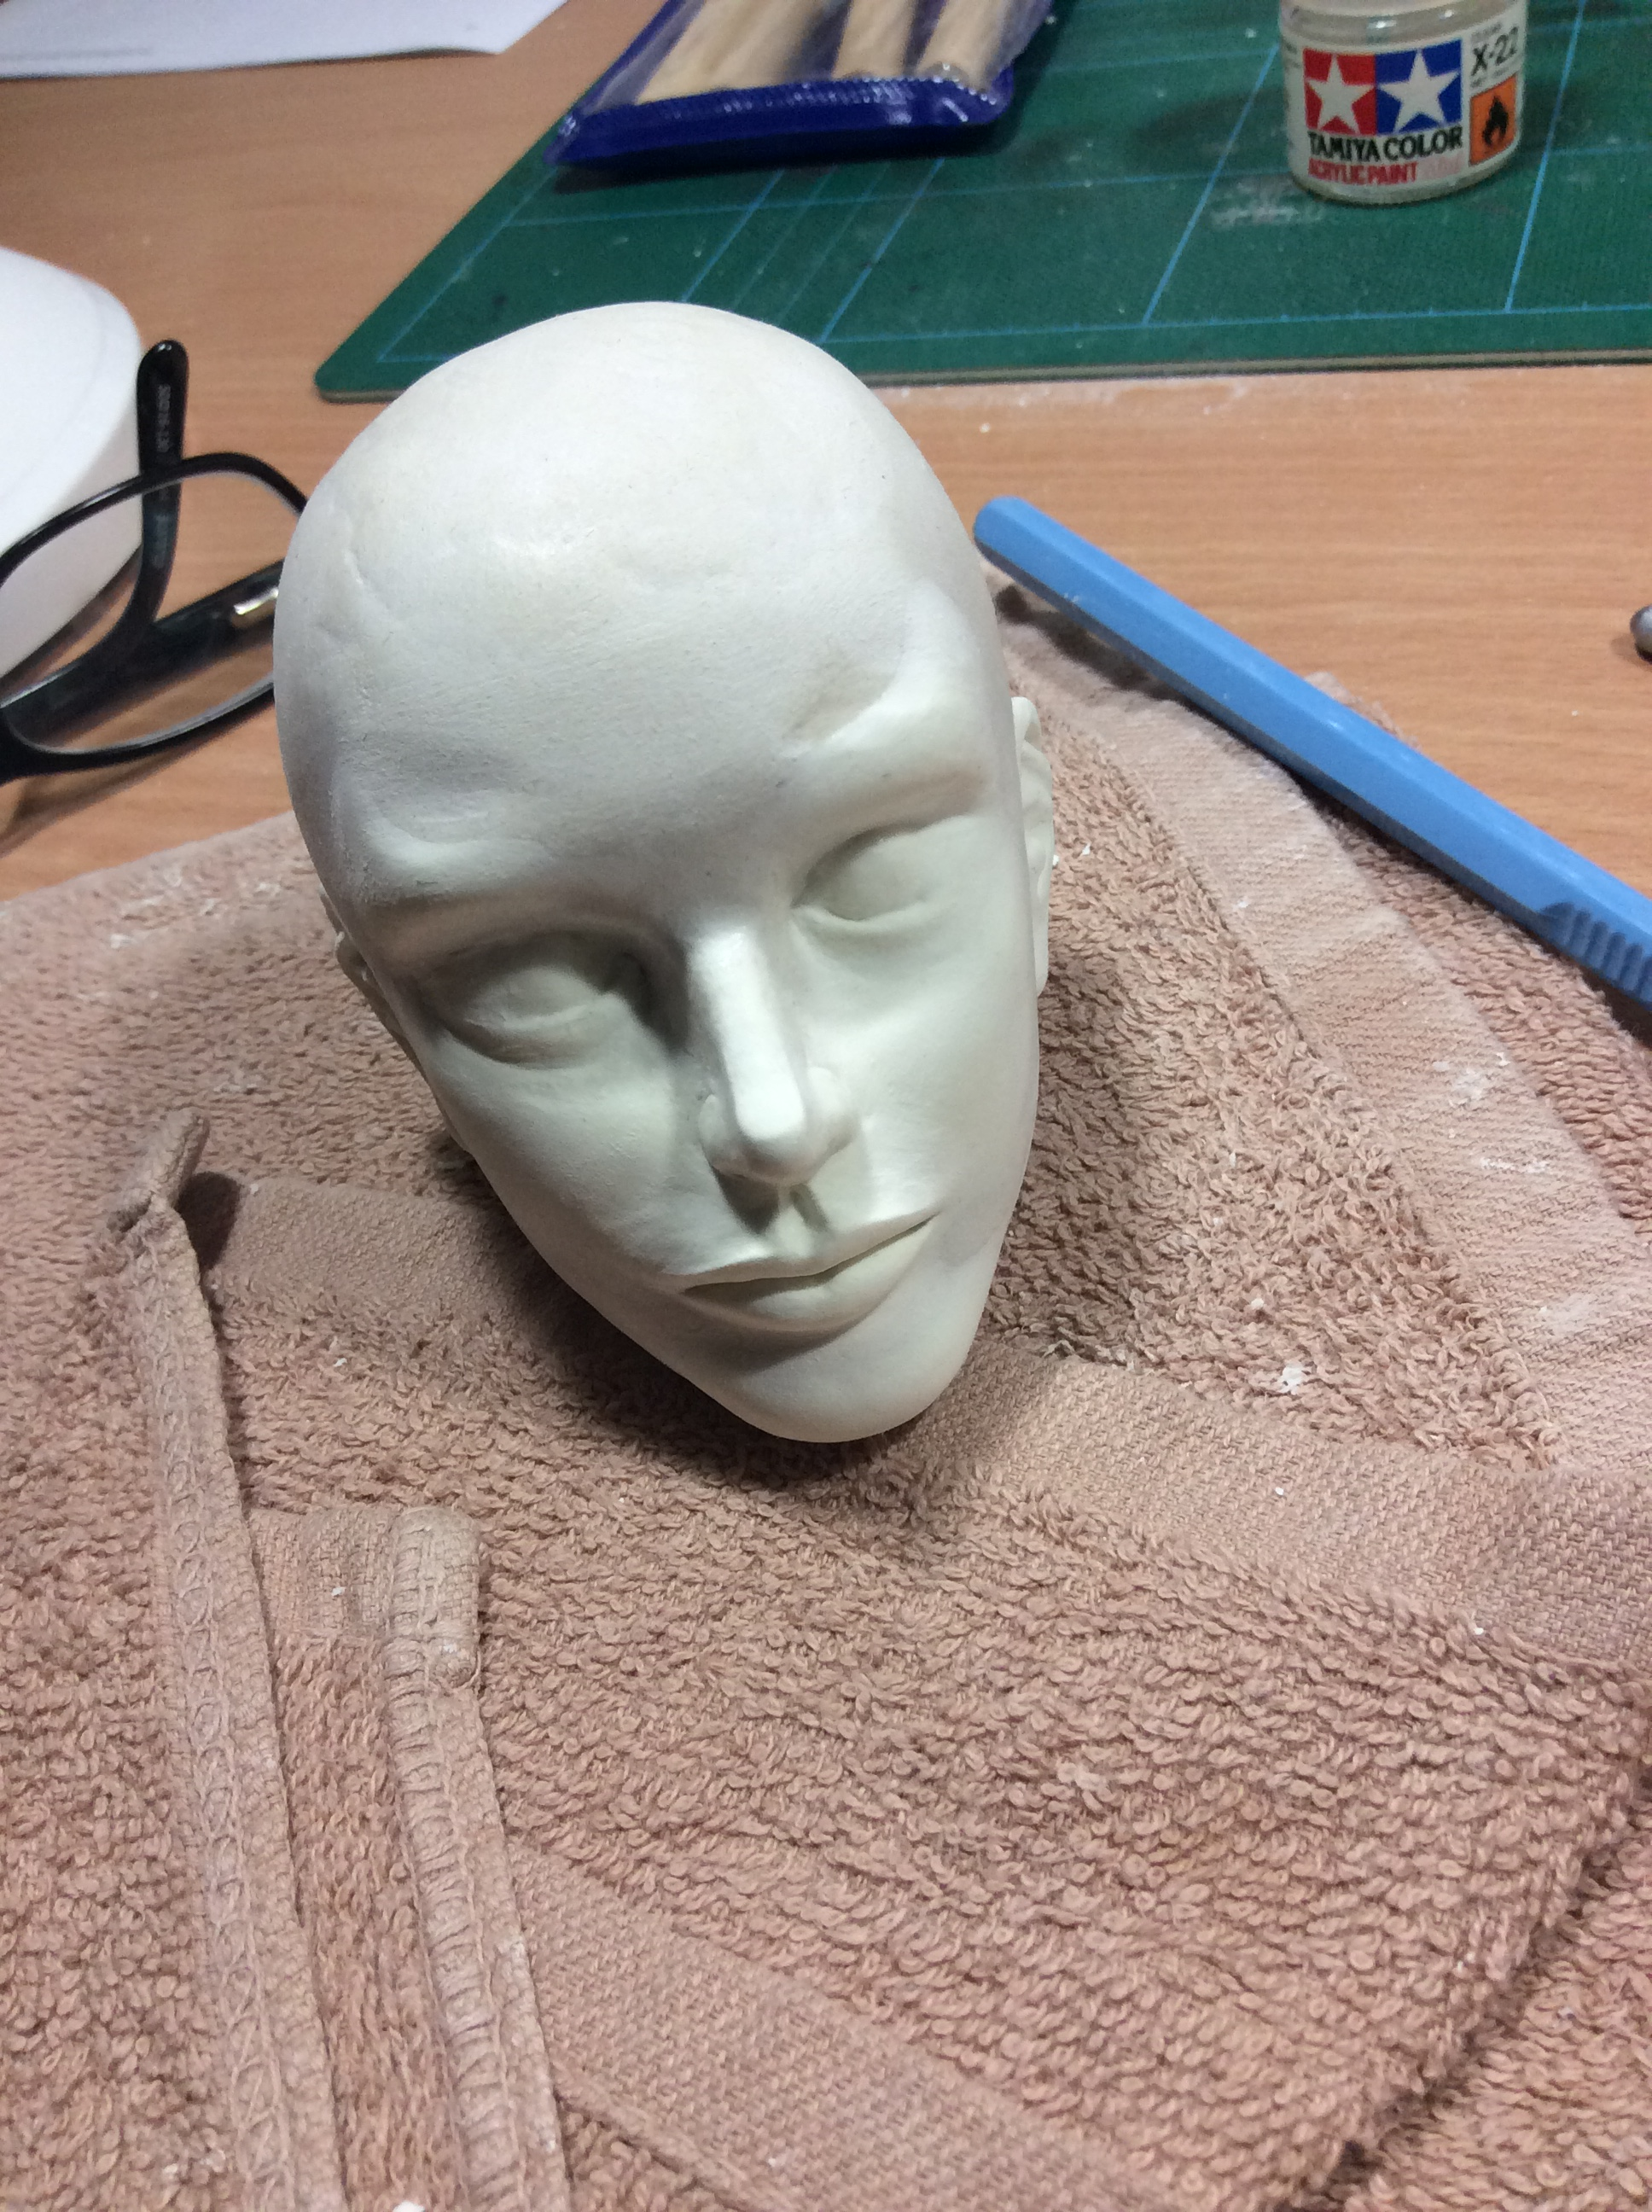 jemse---my-first-doll-head-making-progress-diary-part-3_31571083494_o